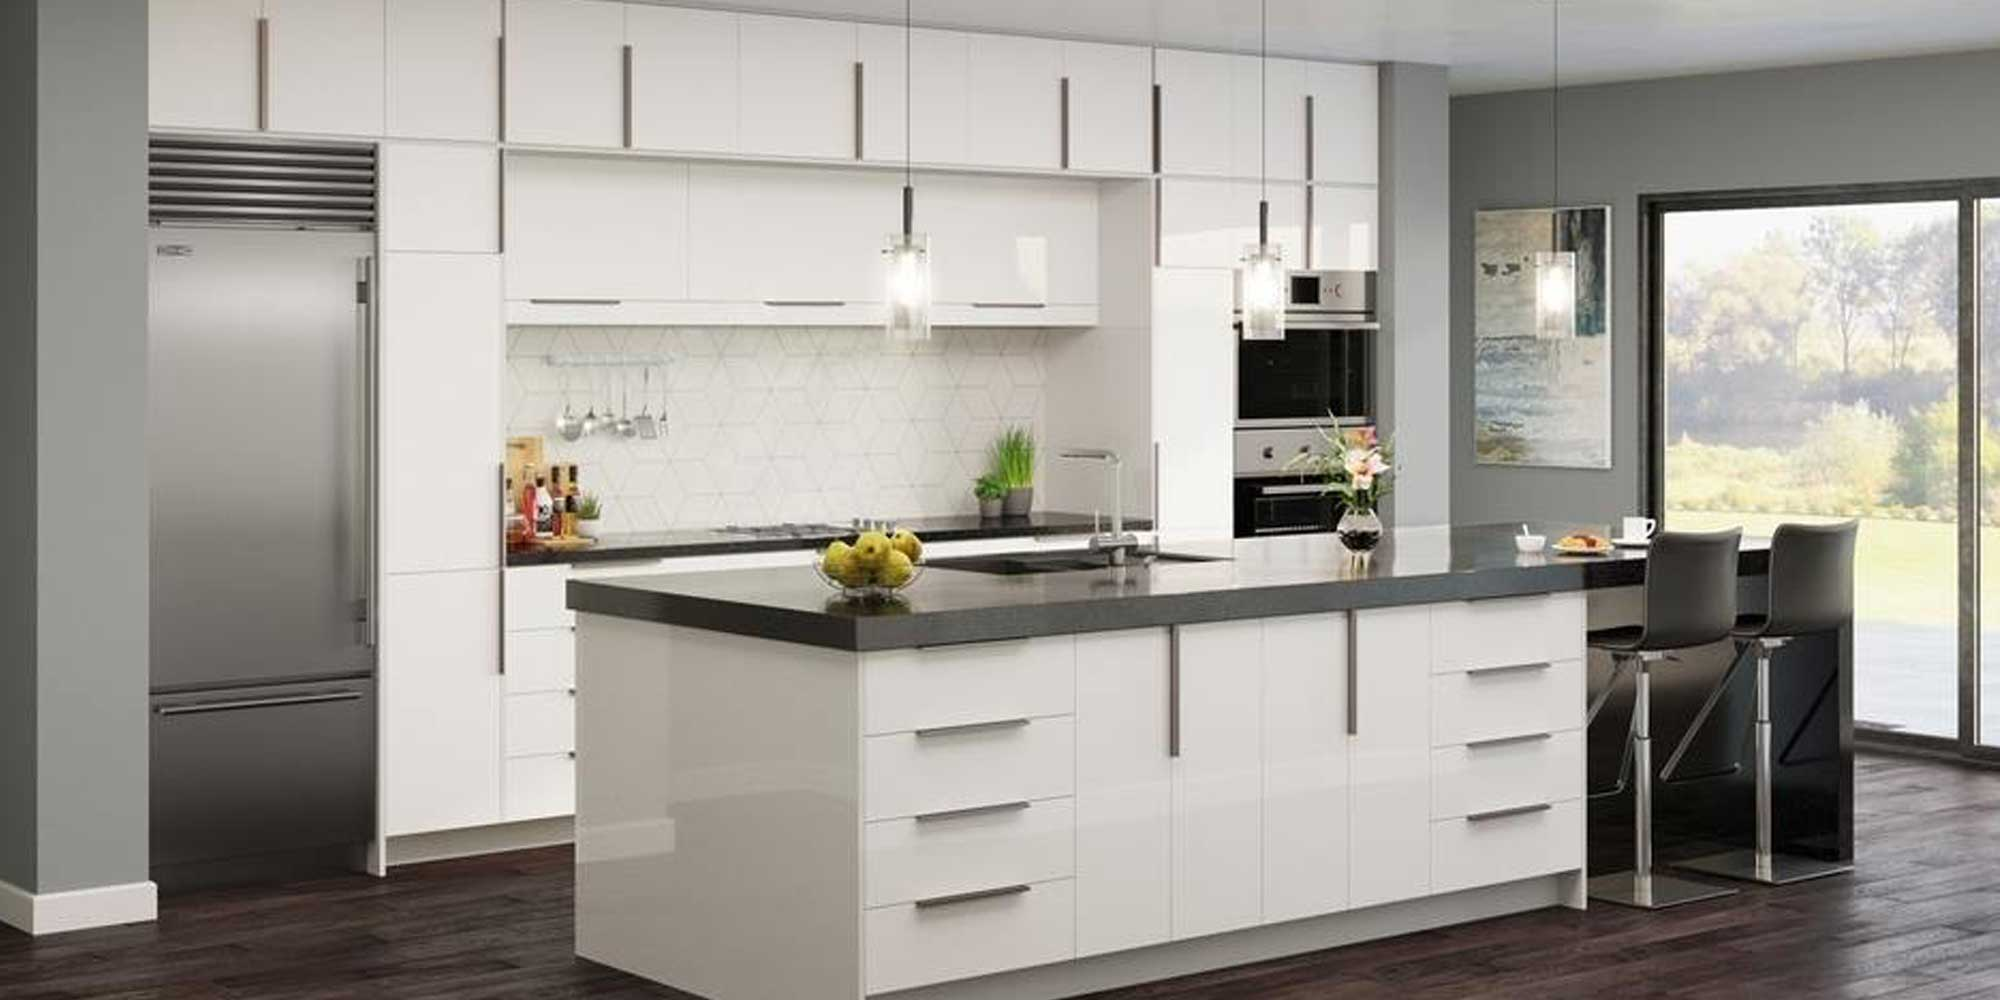 white cabinets with grey marble countertops and walls with black stools and dark brown wooden floor